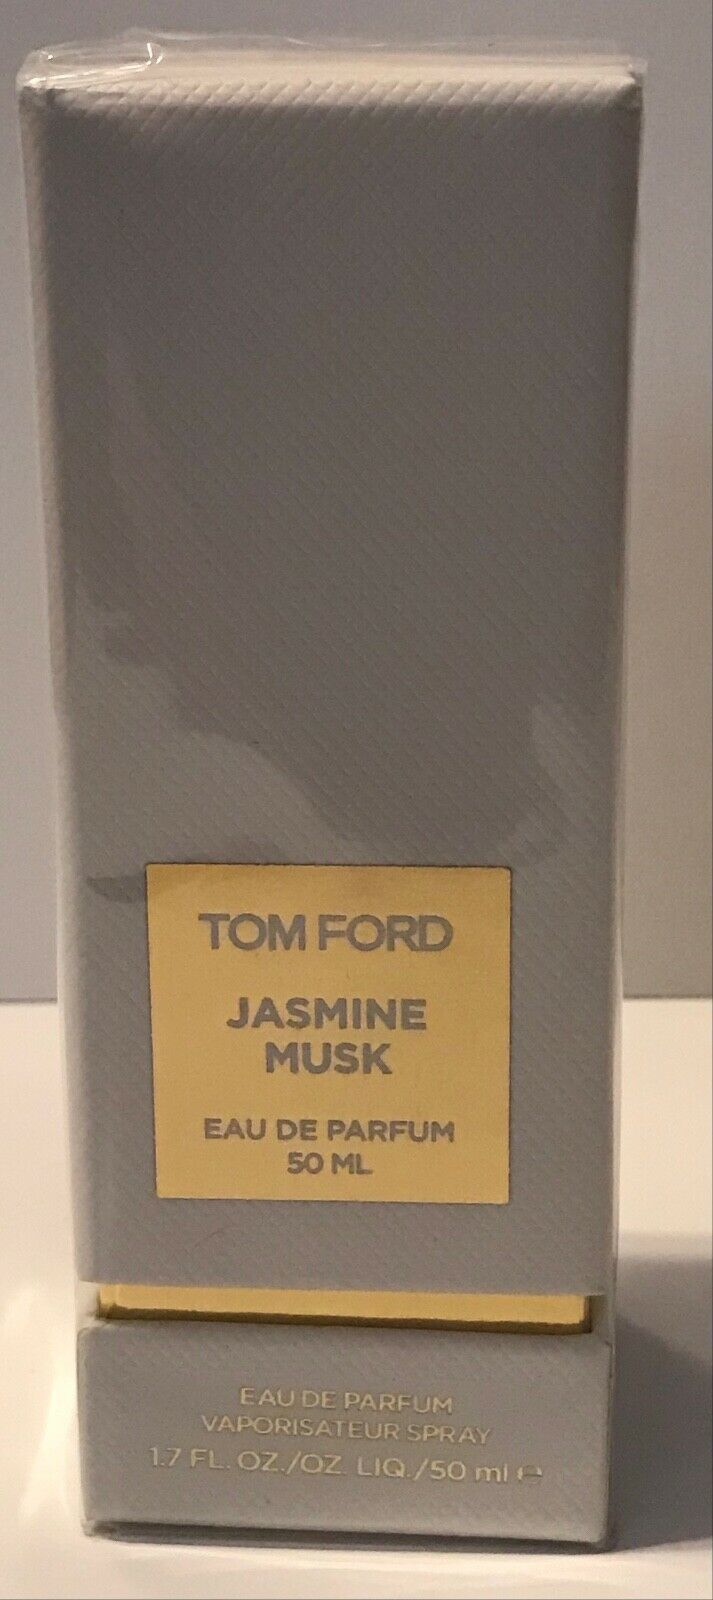 Tom Ford Private Blend Jasmine Musk Perfume 1.7 Oz Eau De Parfum Spray